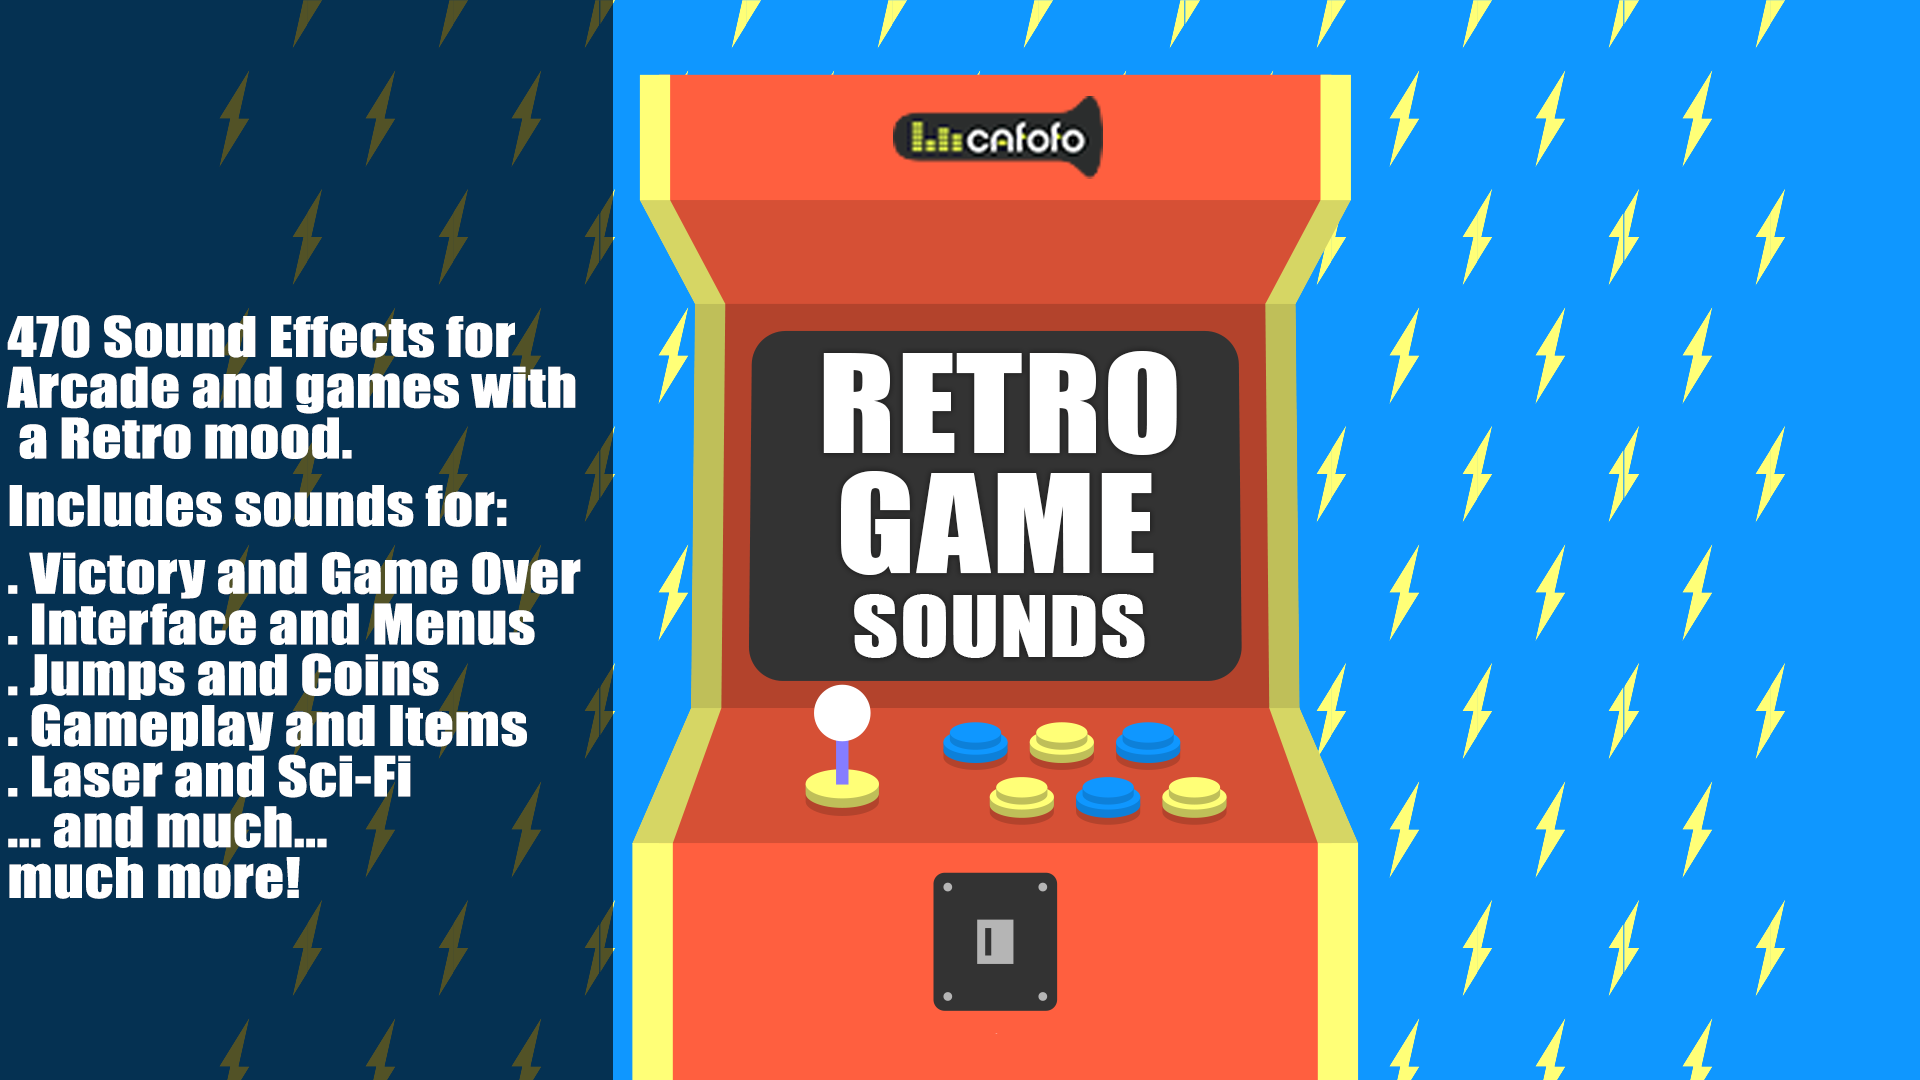 Retro Game Sounds by Cafofo Music in Sound Effects - UE4 Marketplace